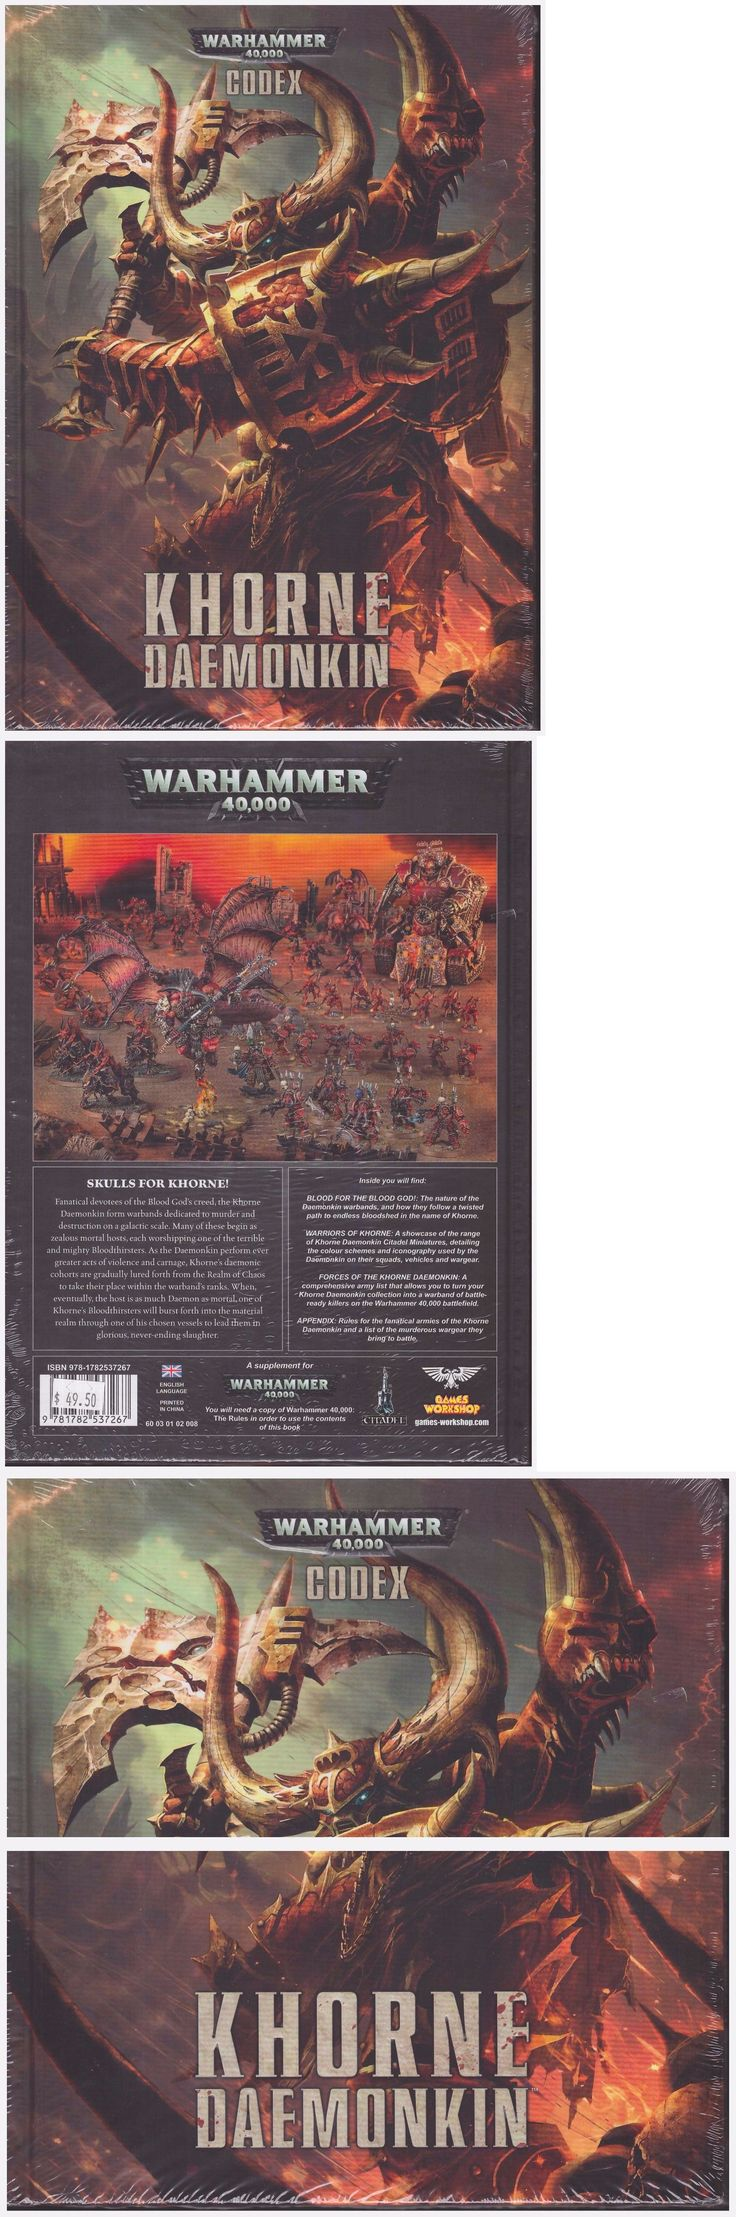 40K Rulebooks and Publications 90944: Gw Warhammer 40K Codex Khorne Daemonkin - Hard Cover - Shrink Wrapped! -> BUY IT NOW ONLY: $35.99 on eBay!